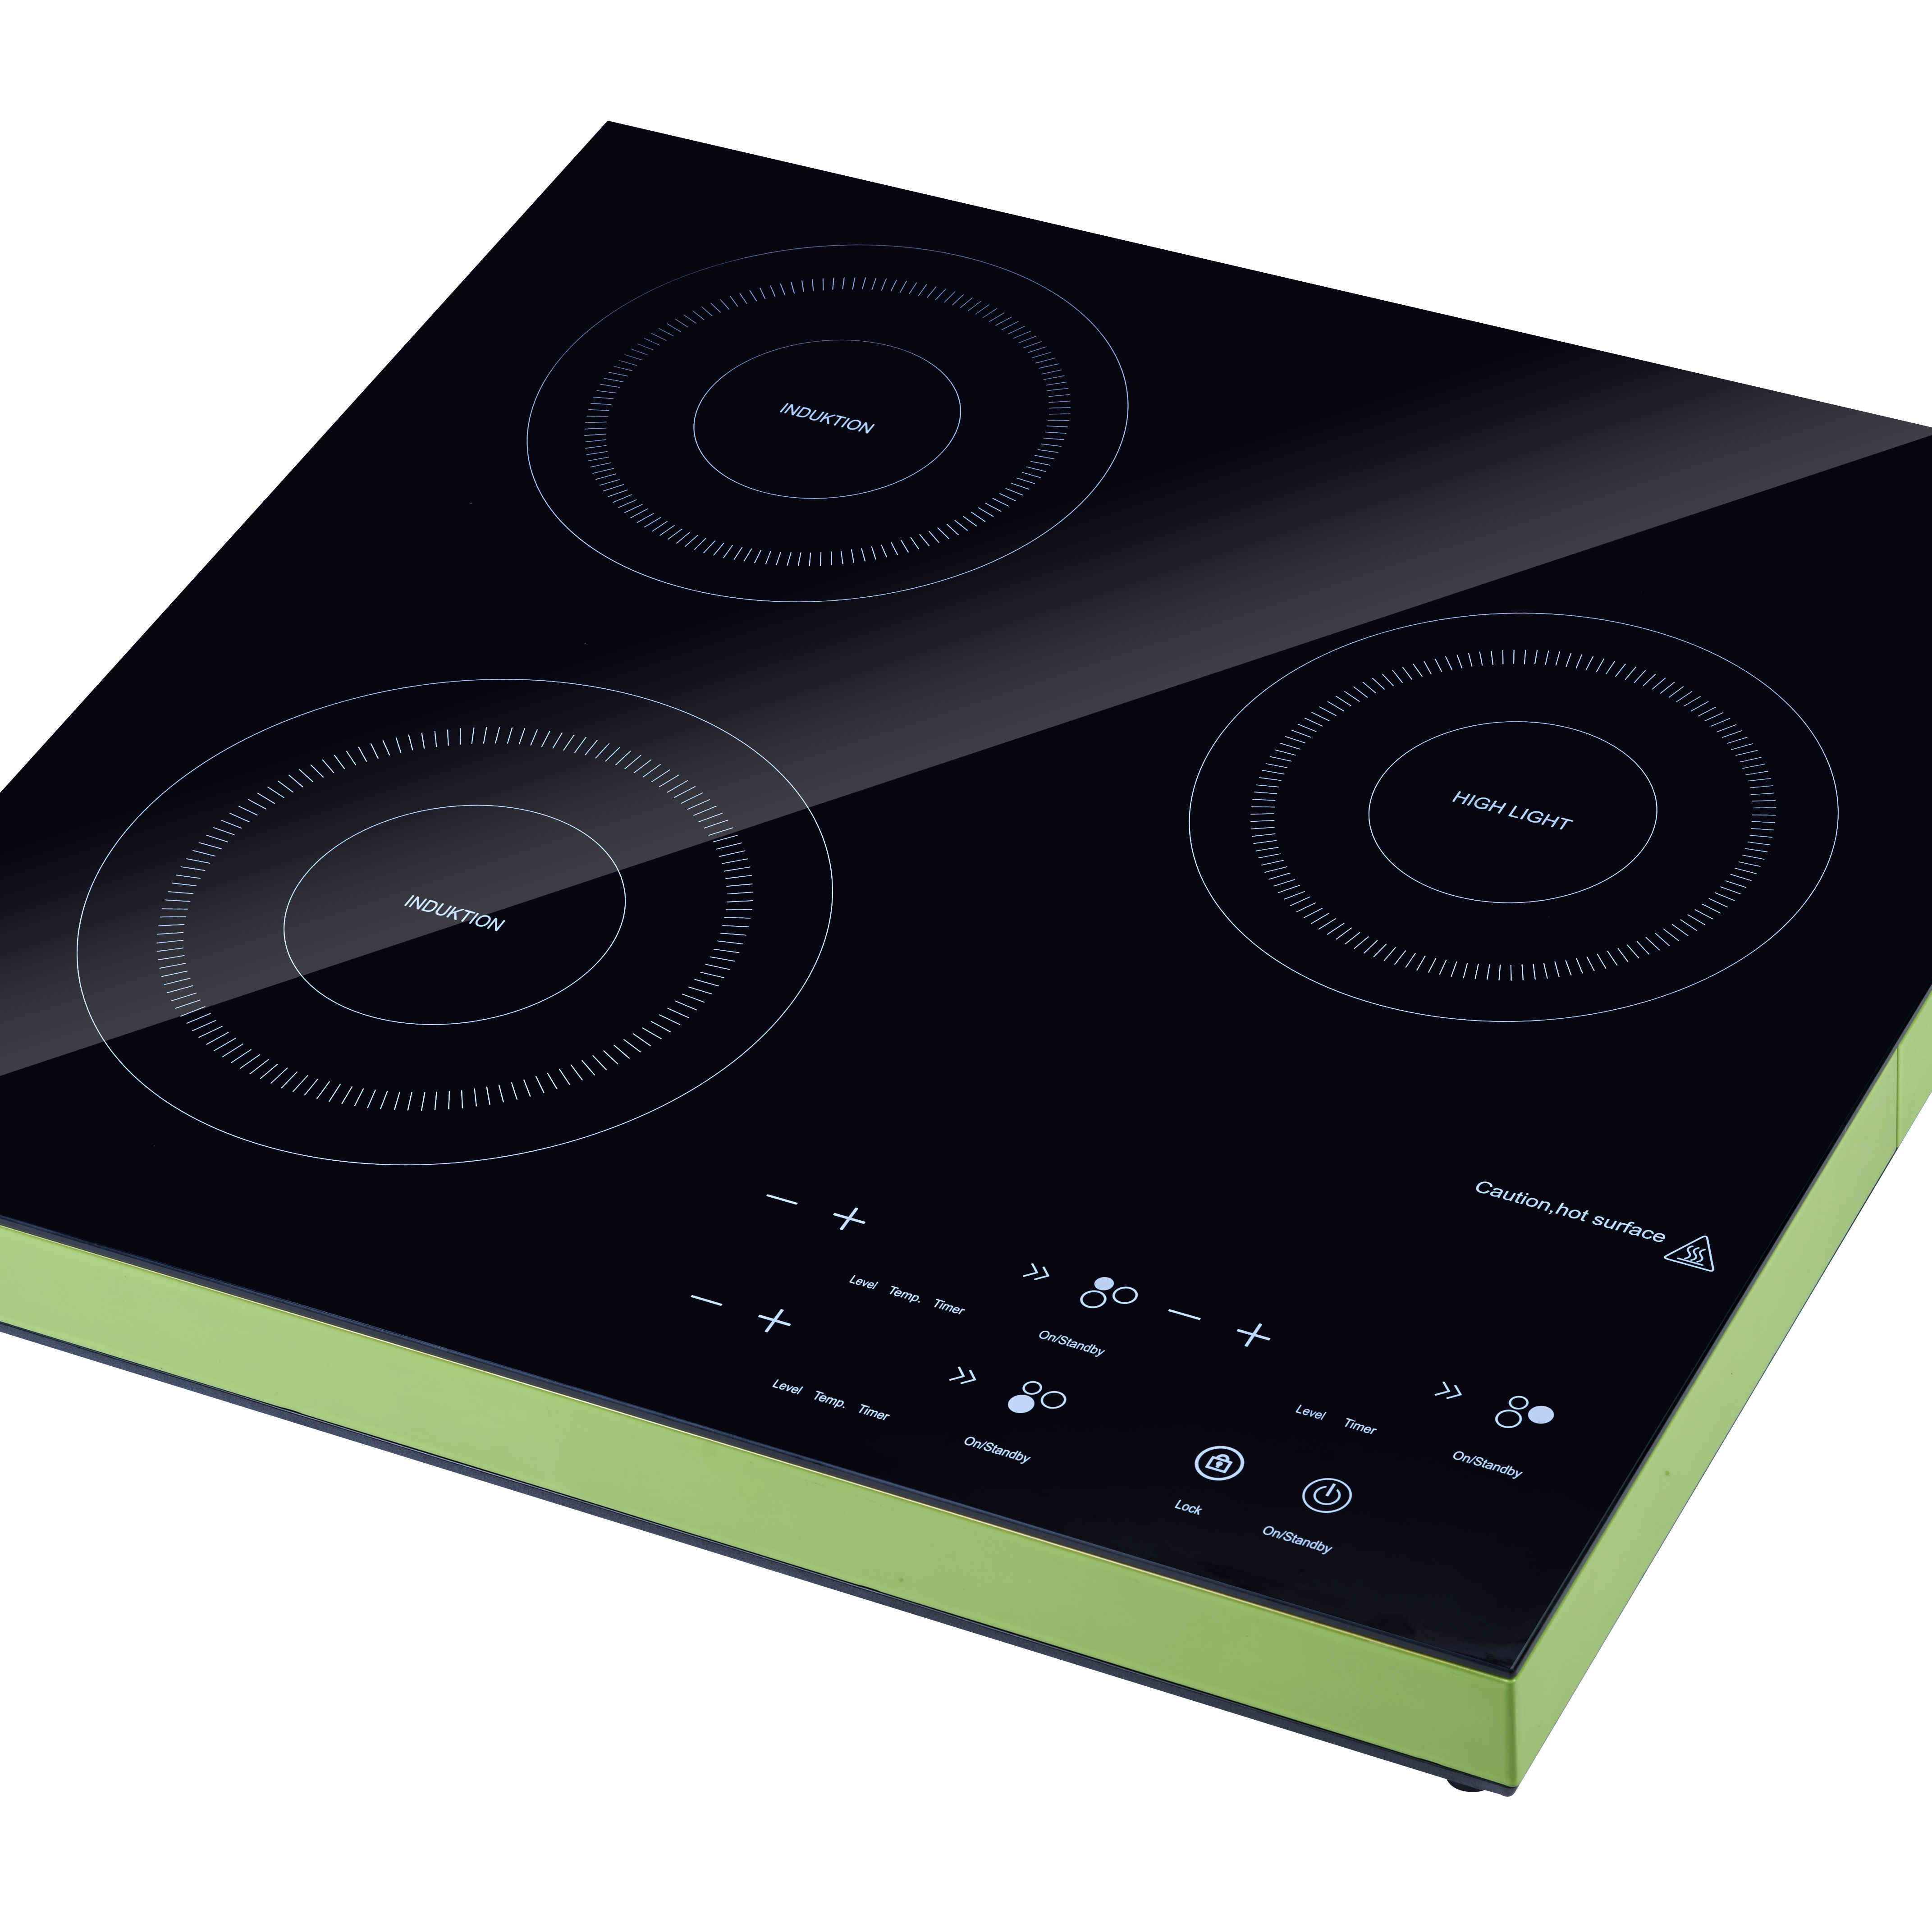 Lower Price 3 Burner Hob Elecftric 3.5KW Induction cooktop Induction counter top cooker hob